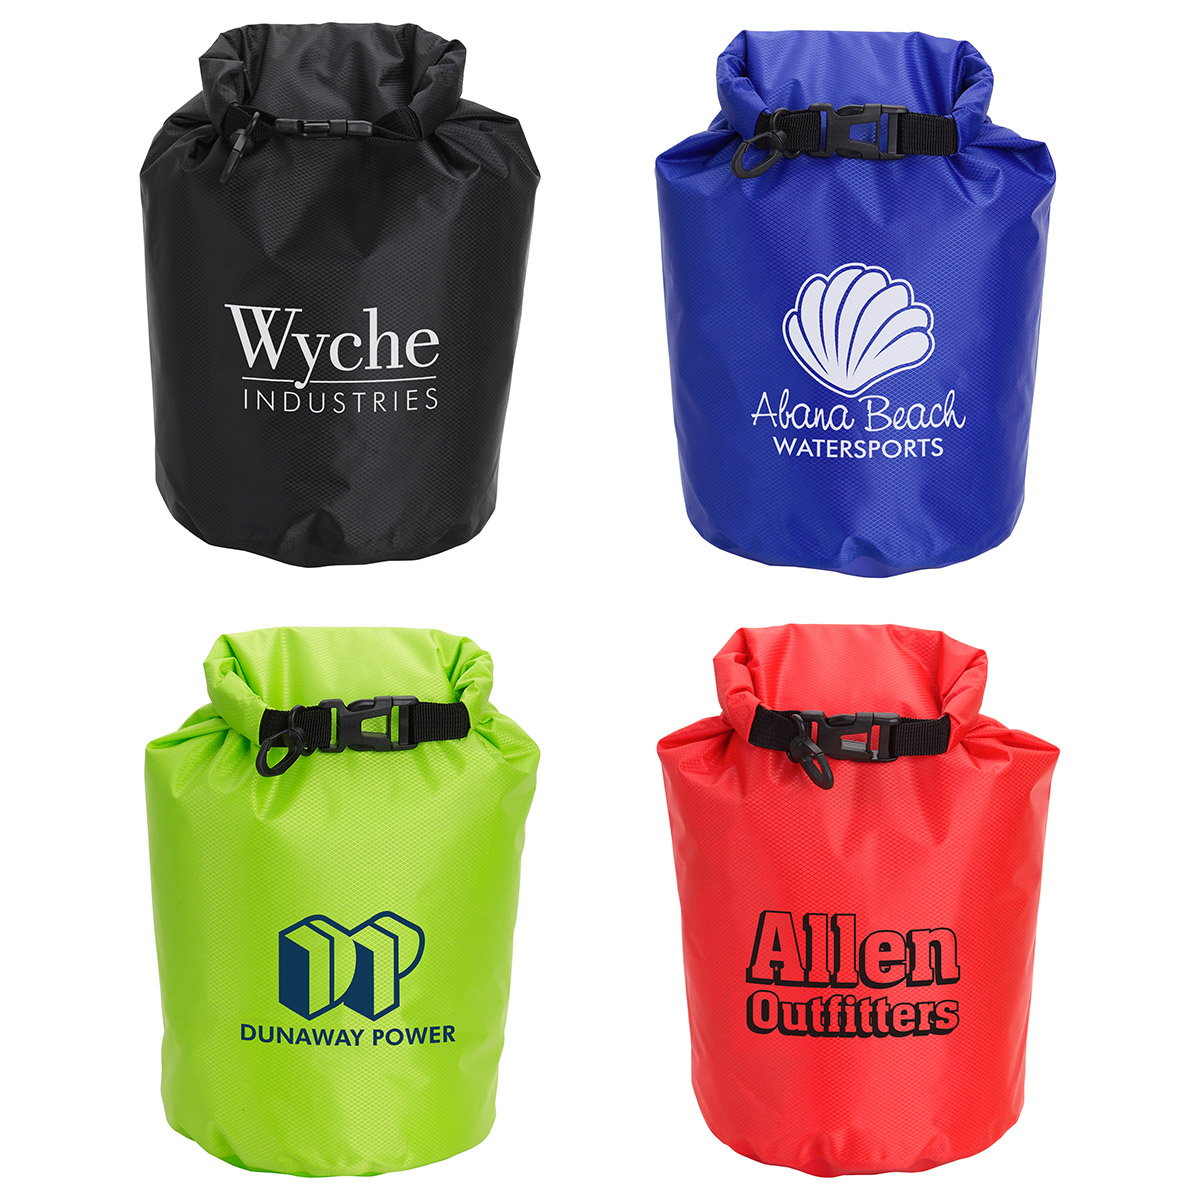 5 Liter Waterproof Gear Bag, WBA-WG17, 1 Colour Imprint